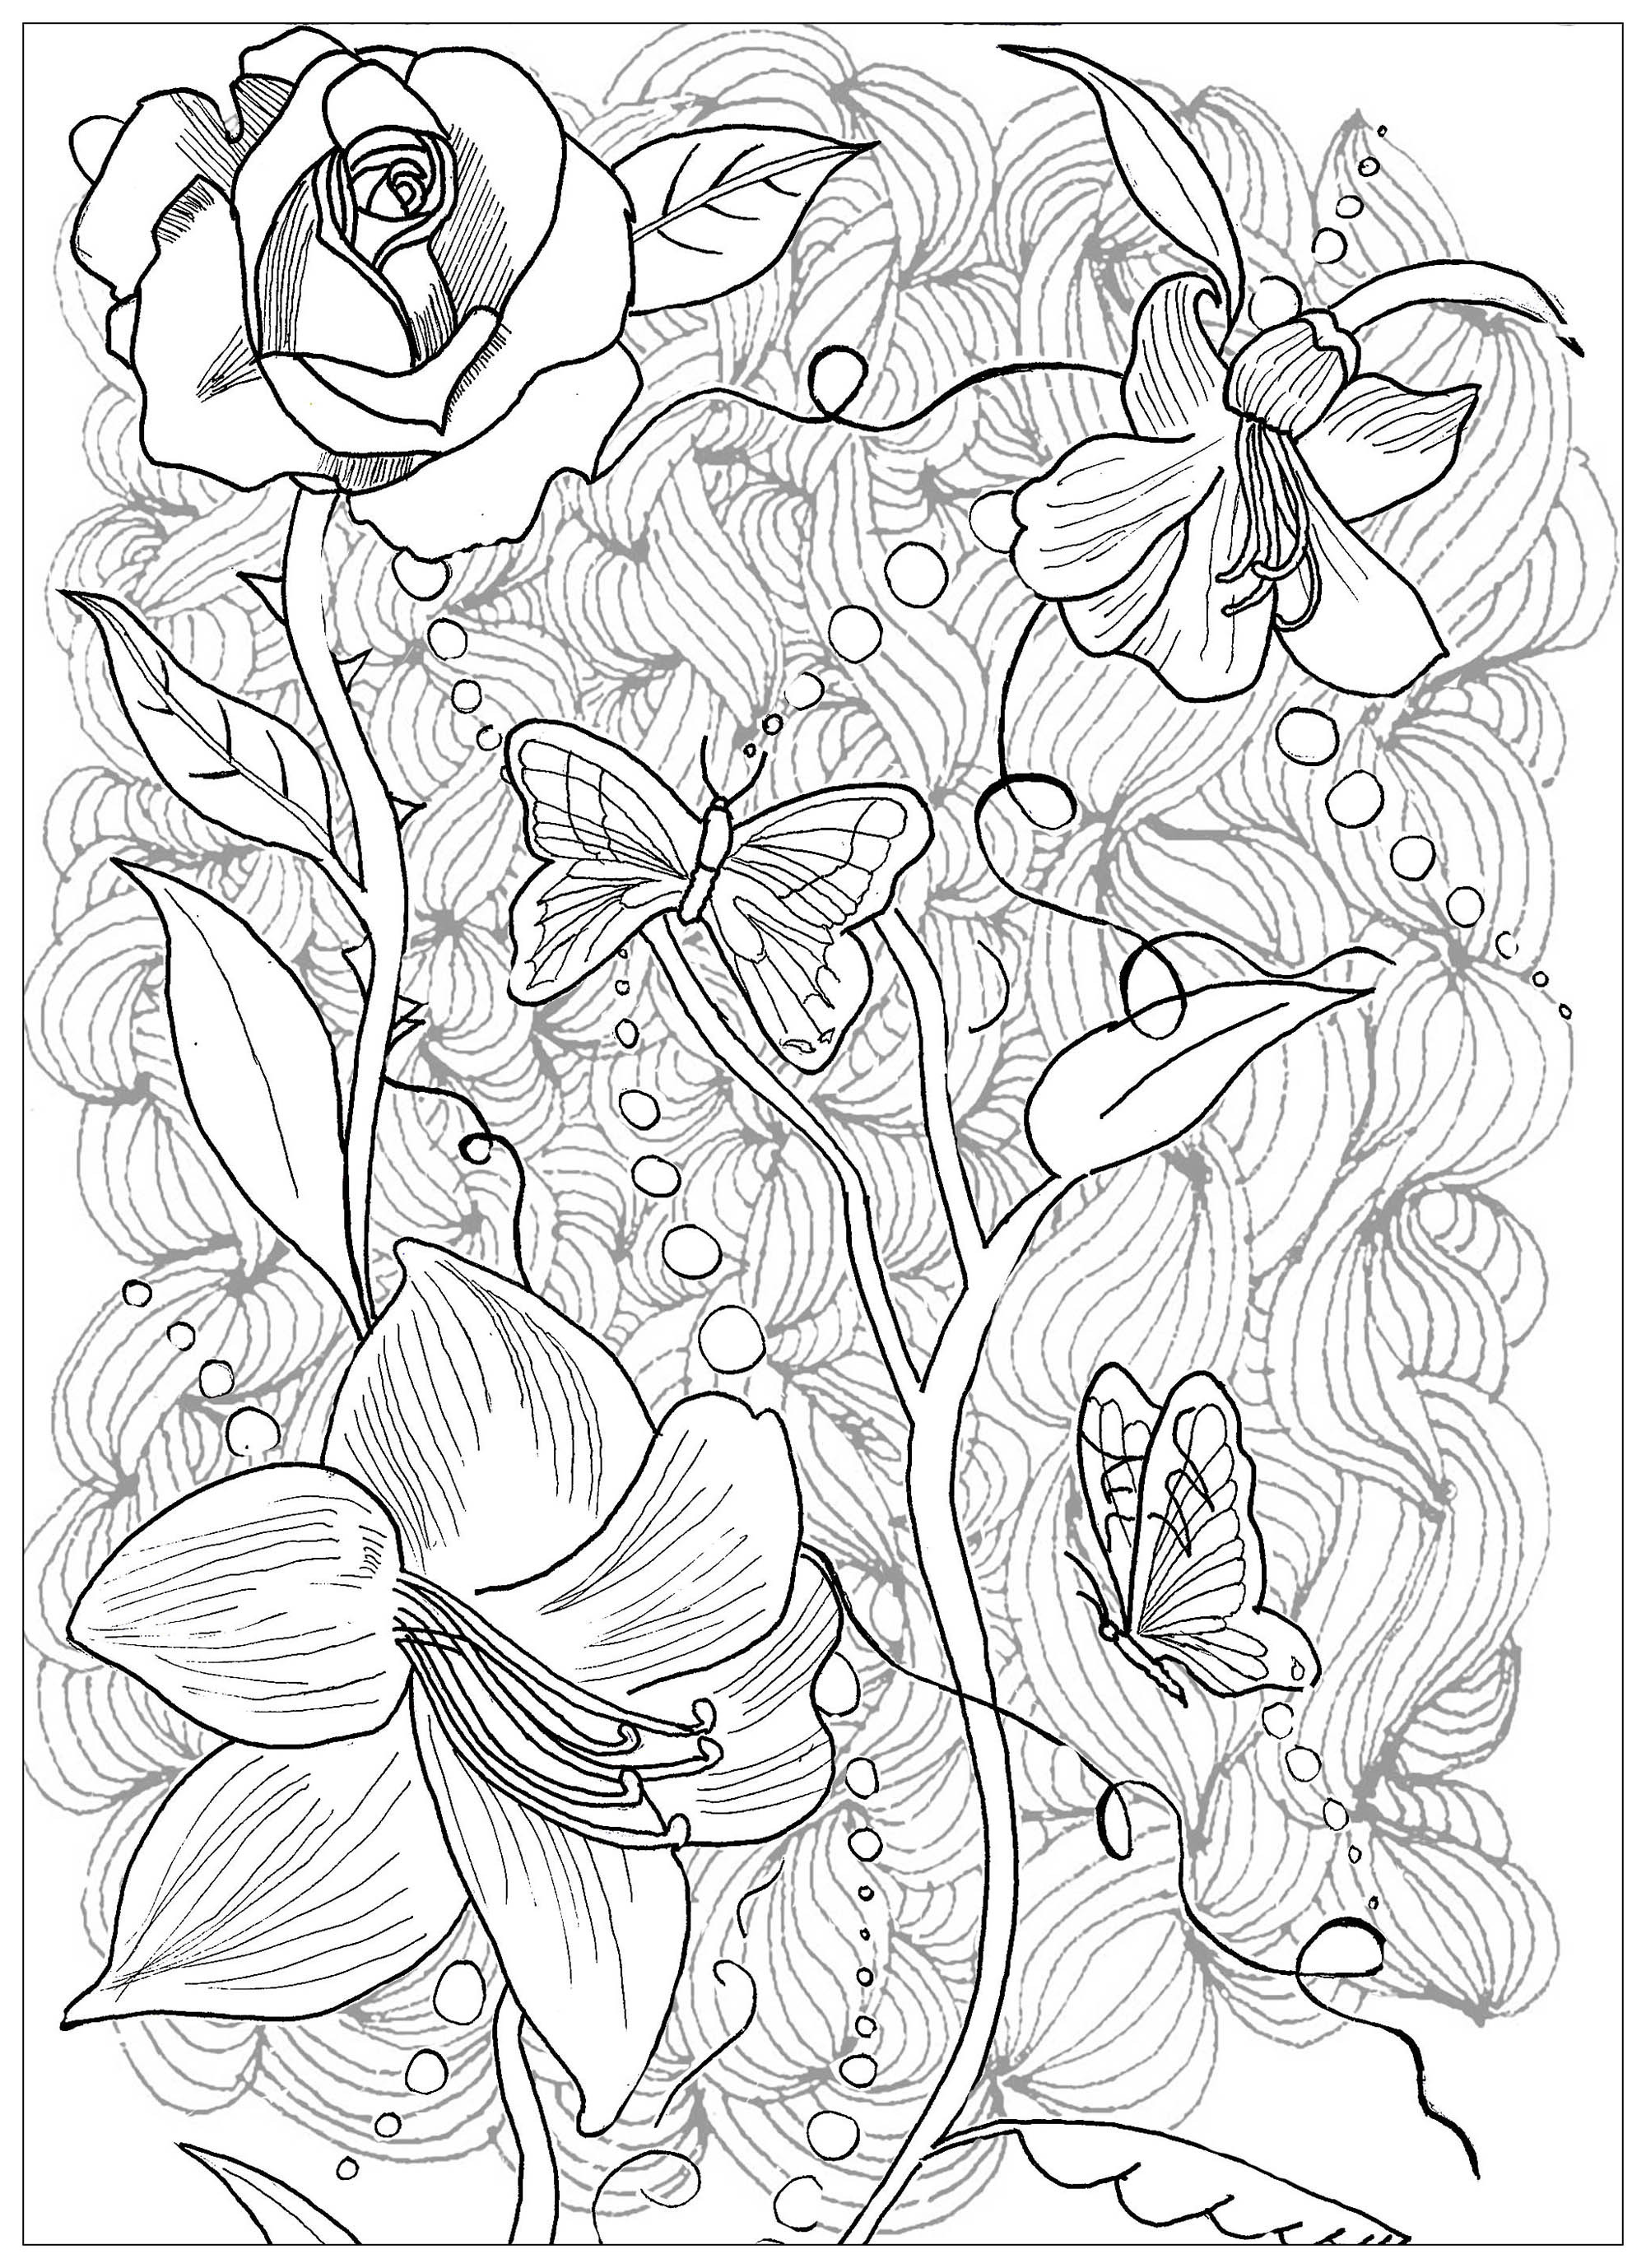 Tattoo Coloring Pages For Adults  Page Tattoo Flowers Butterfly Tattoos Adult Coloring Pages